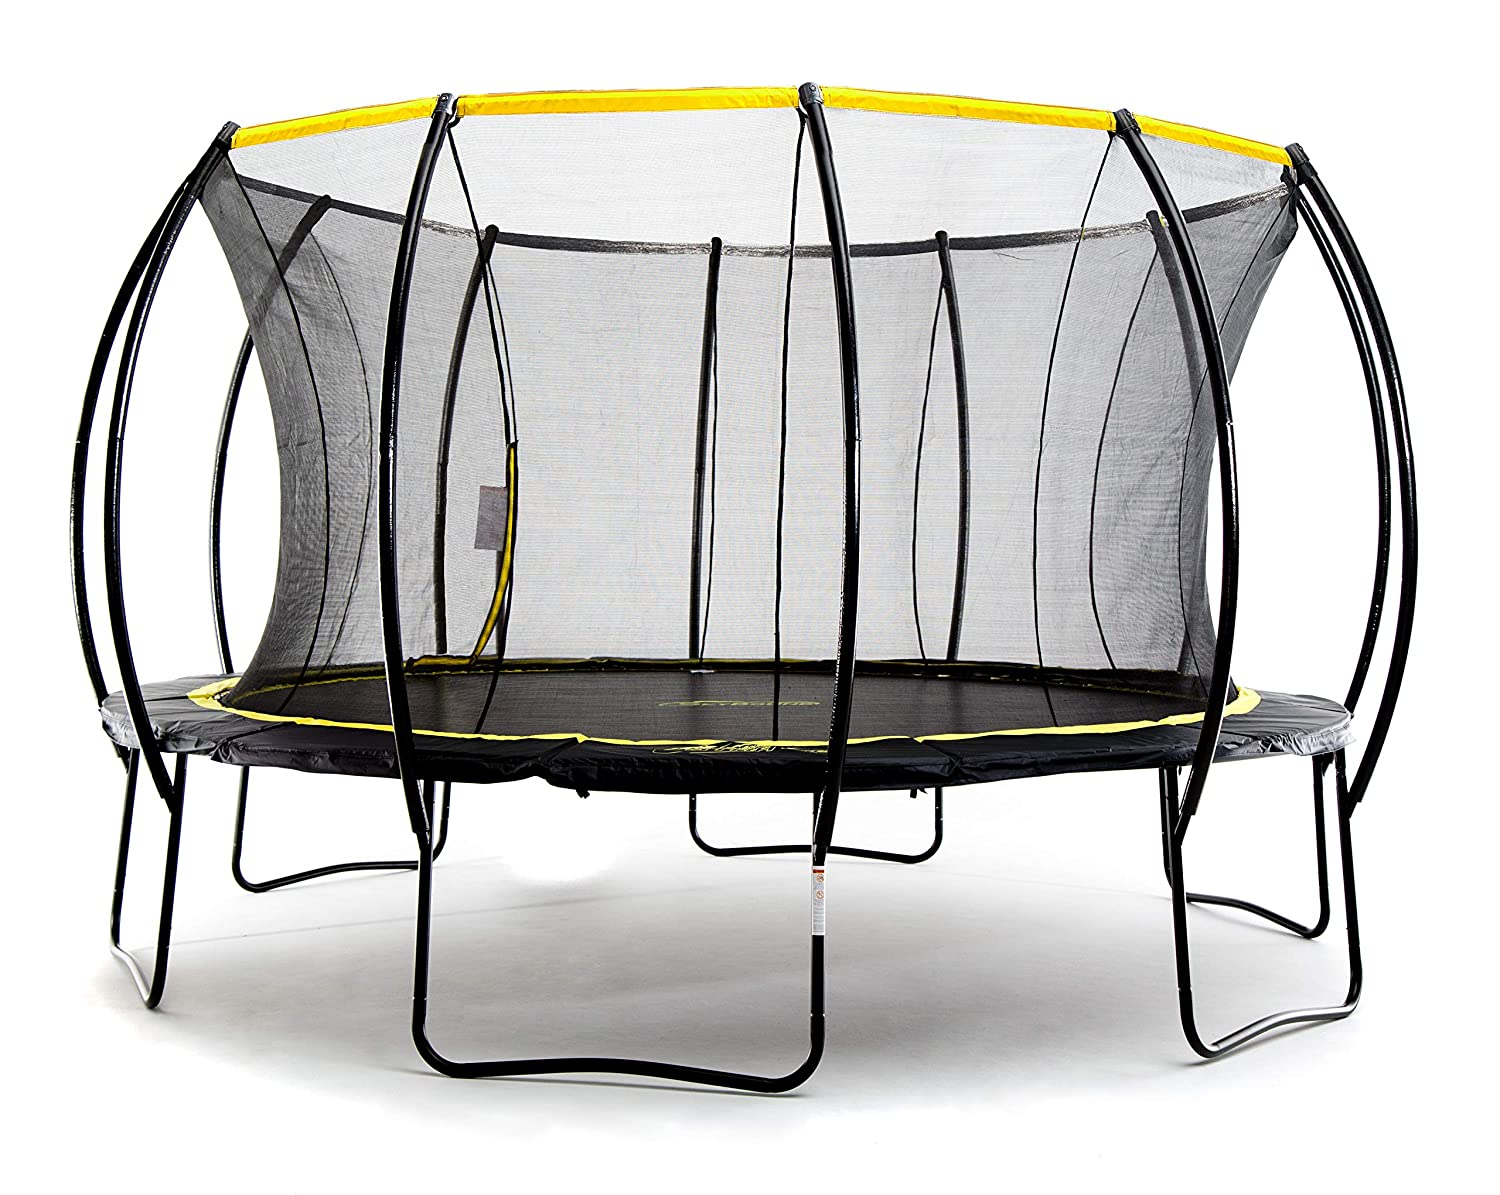 SkyBound Stratos Trampoline – Best All-Around Trampoline